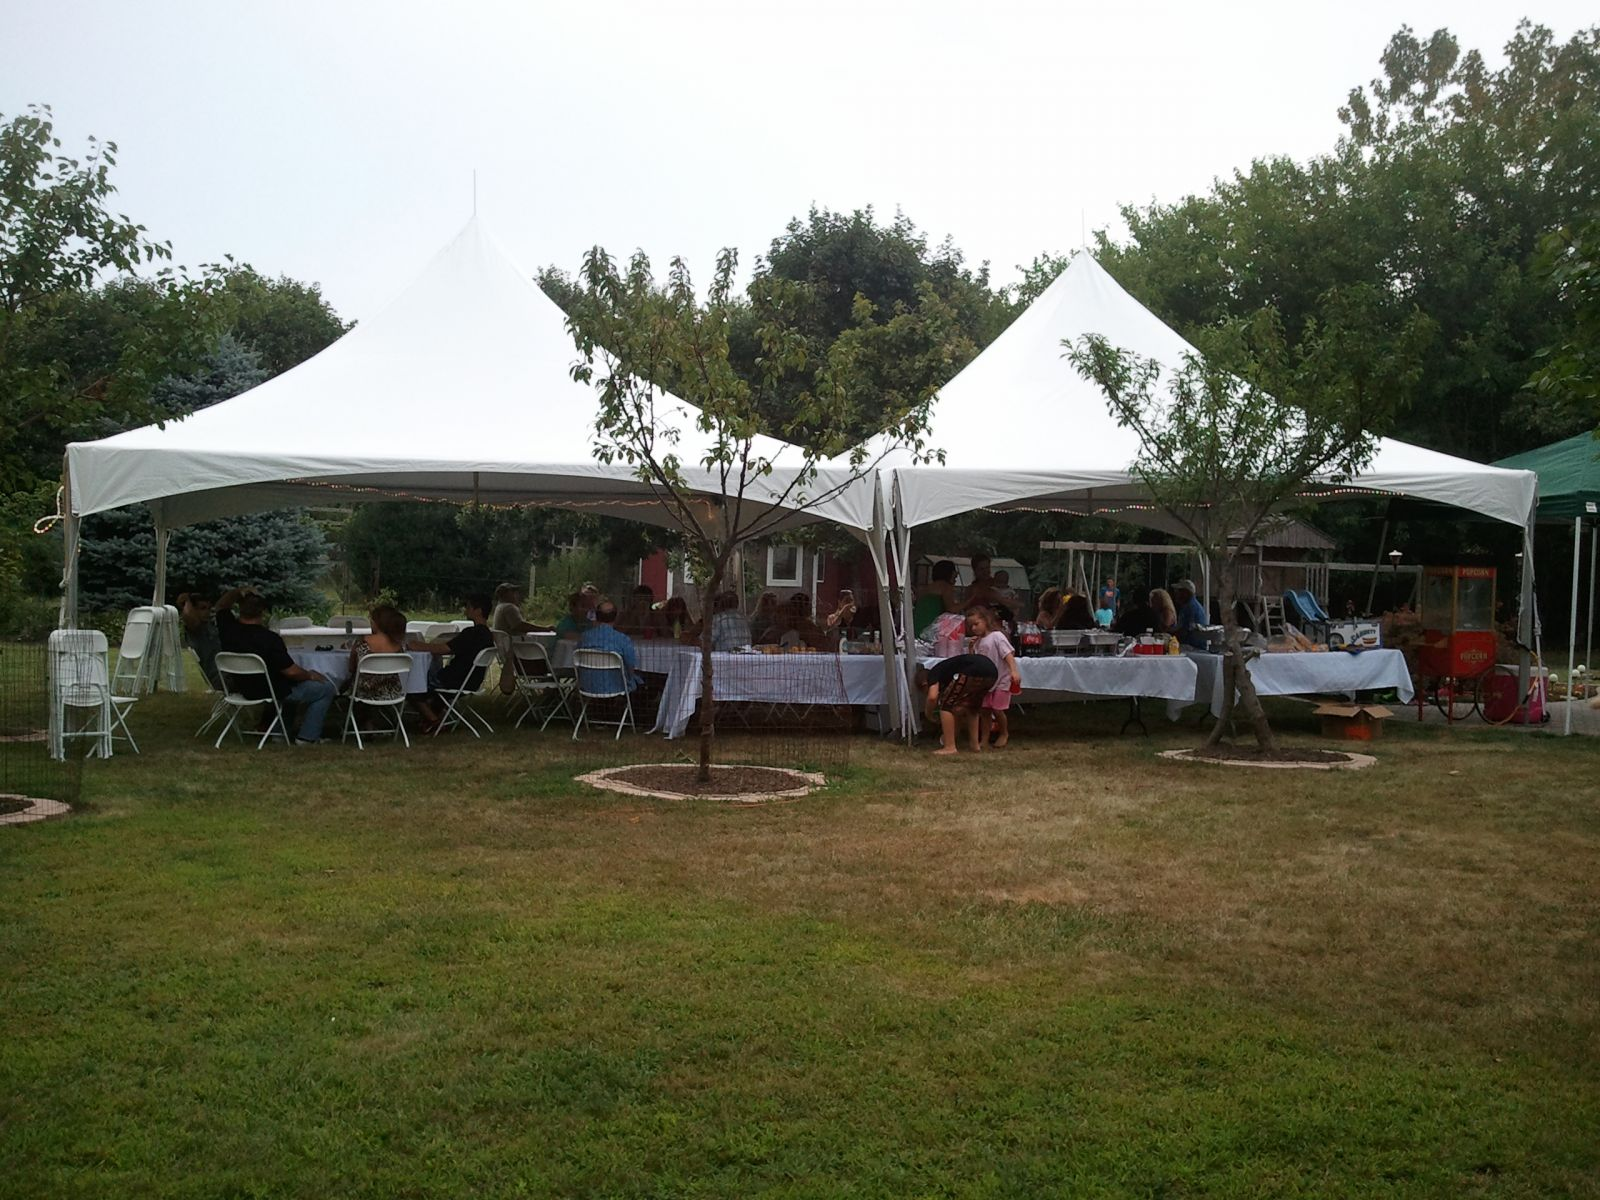 40 foot by 20 foot tent rental for graduation party or other event